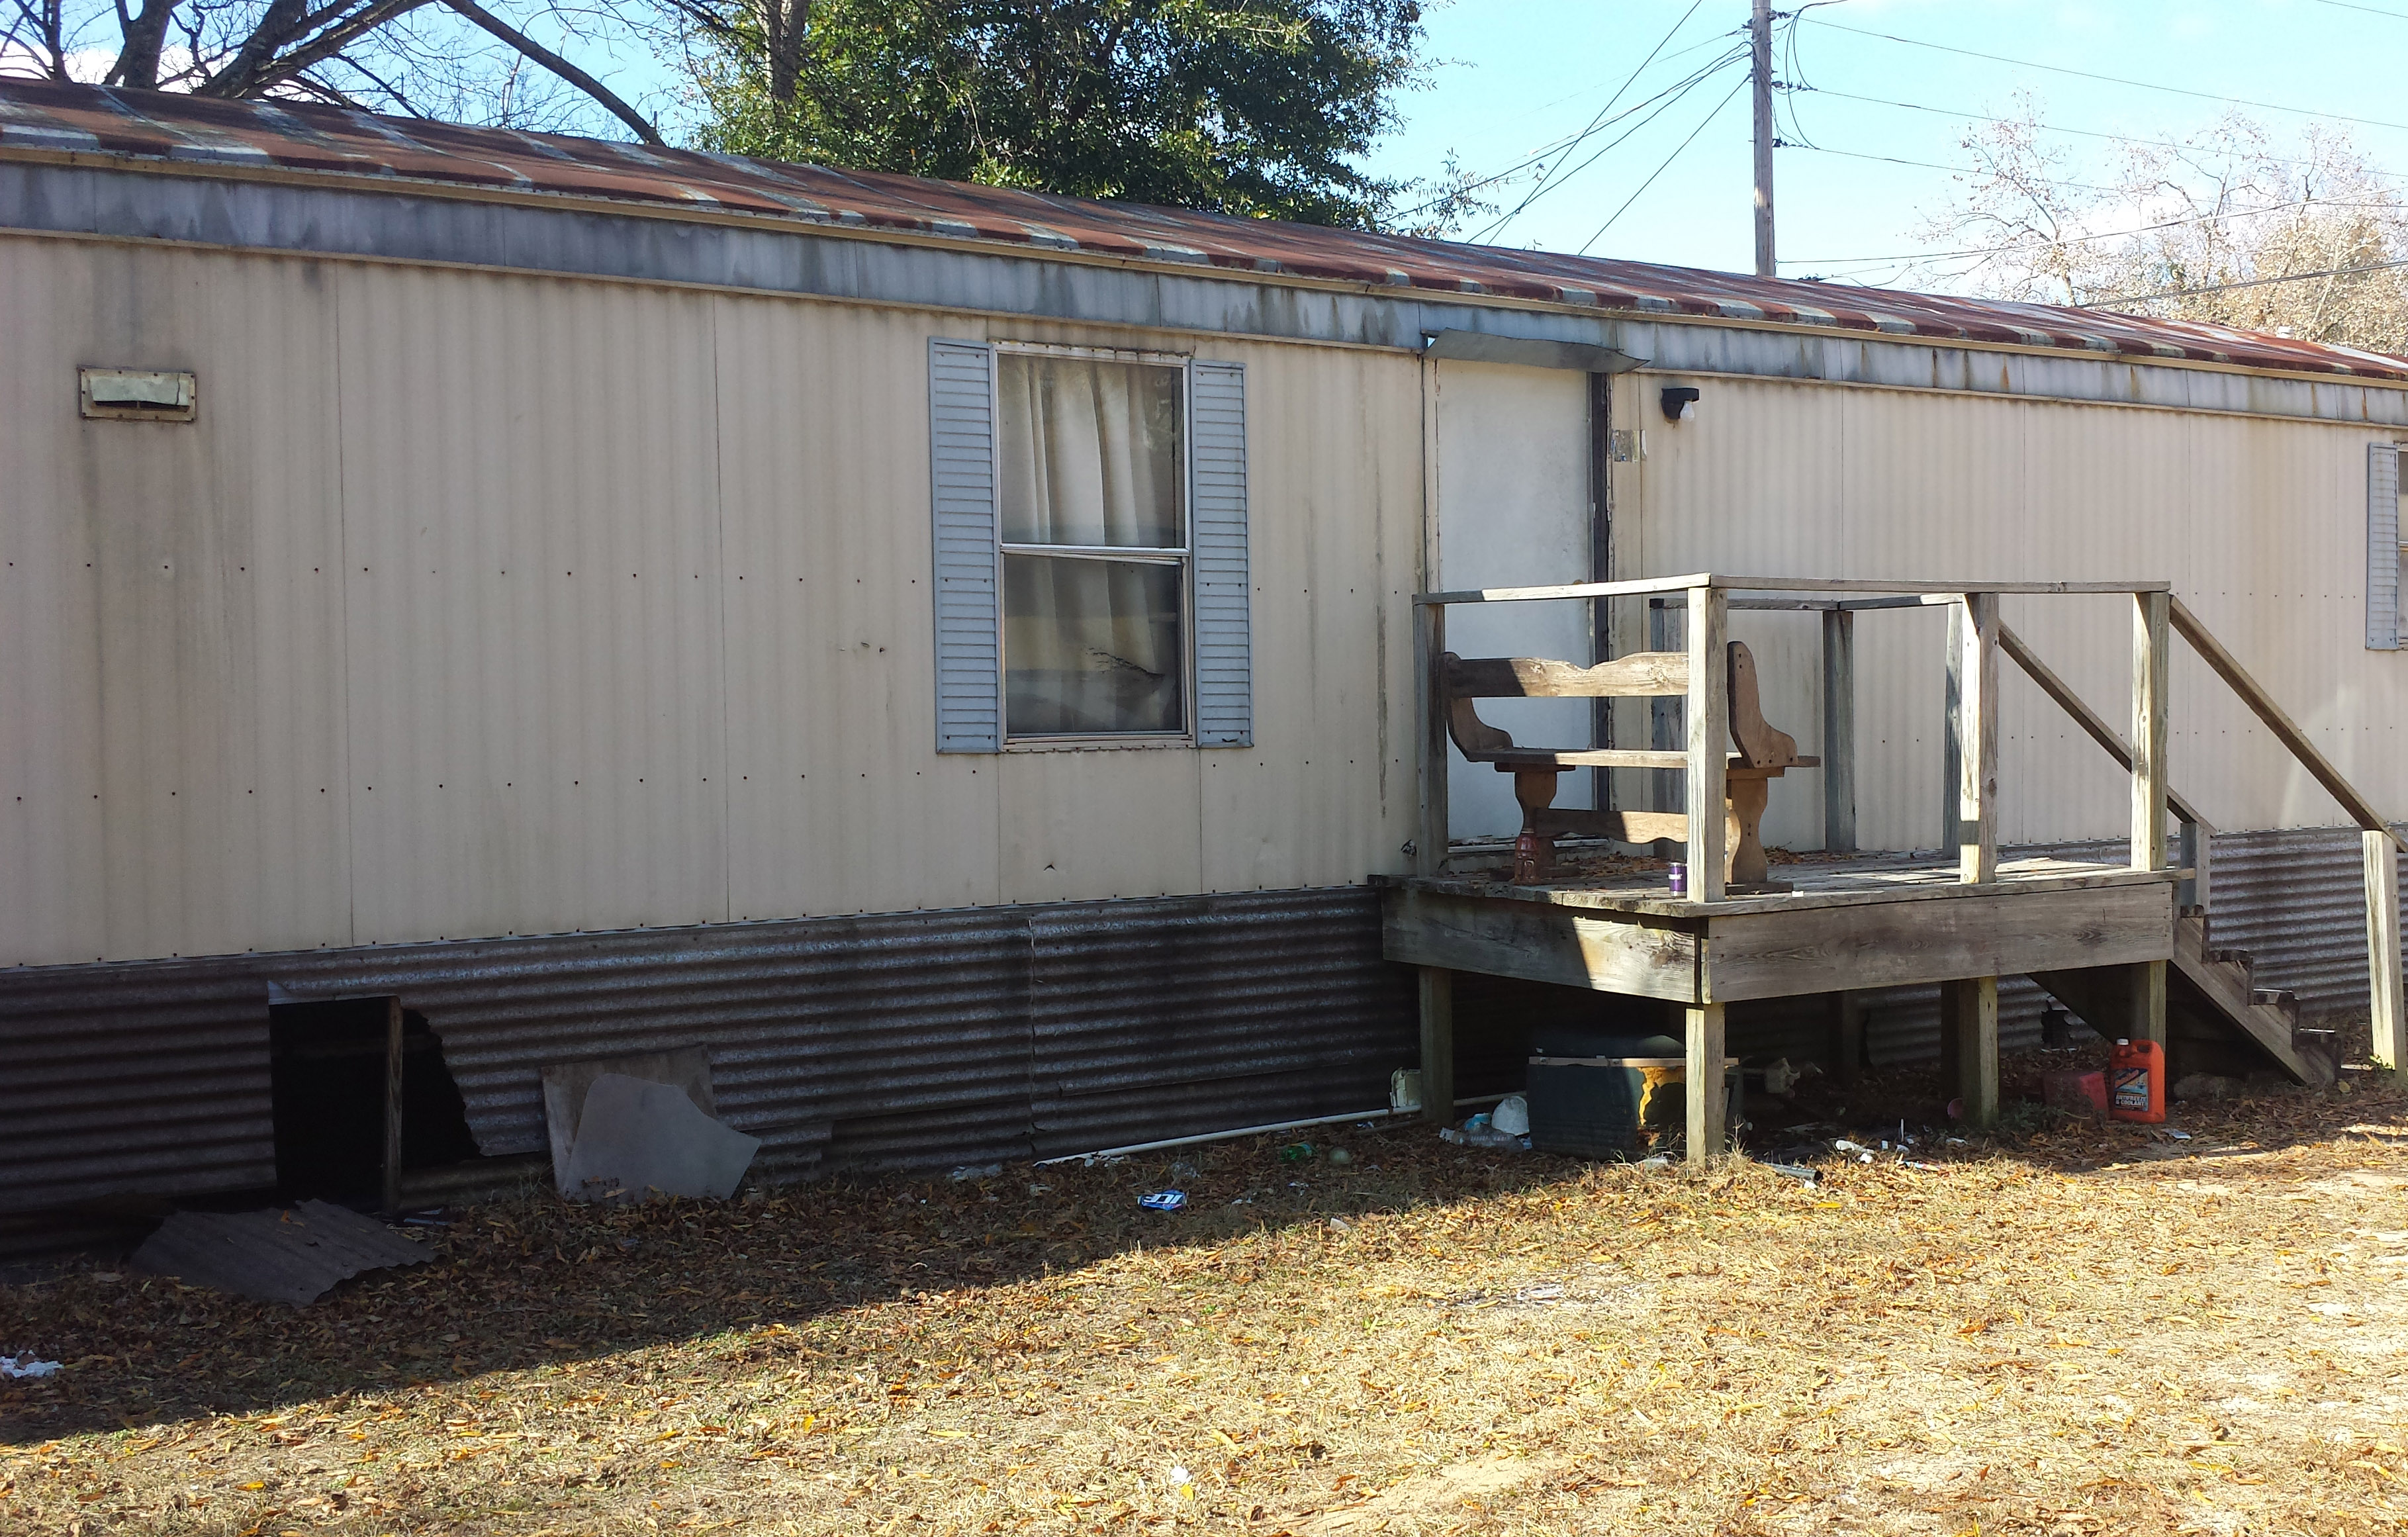 My Aunt Sarah lived in this trailer for over 20 years before she passed away in 2006.